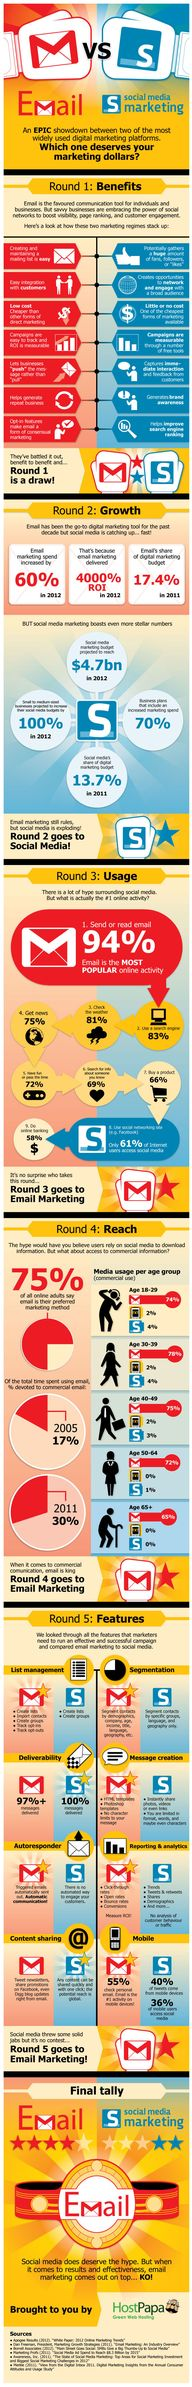 Email Marketing Knoc